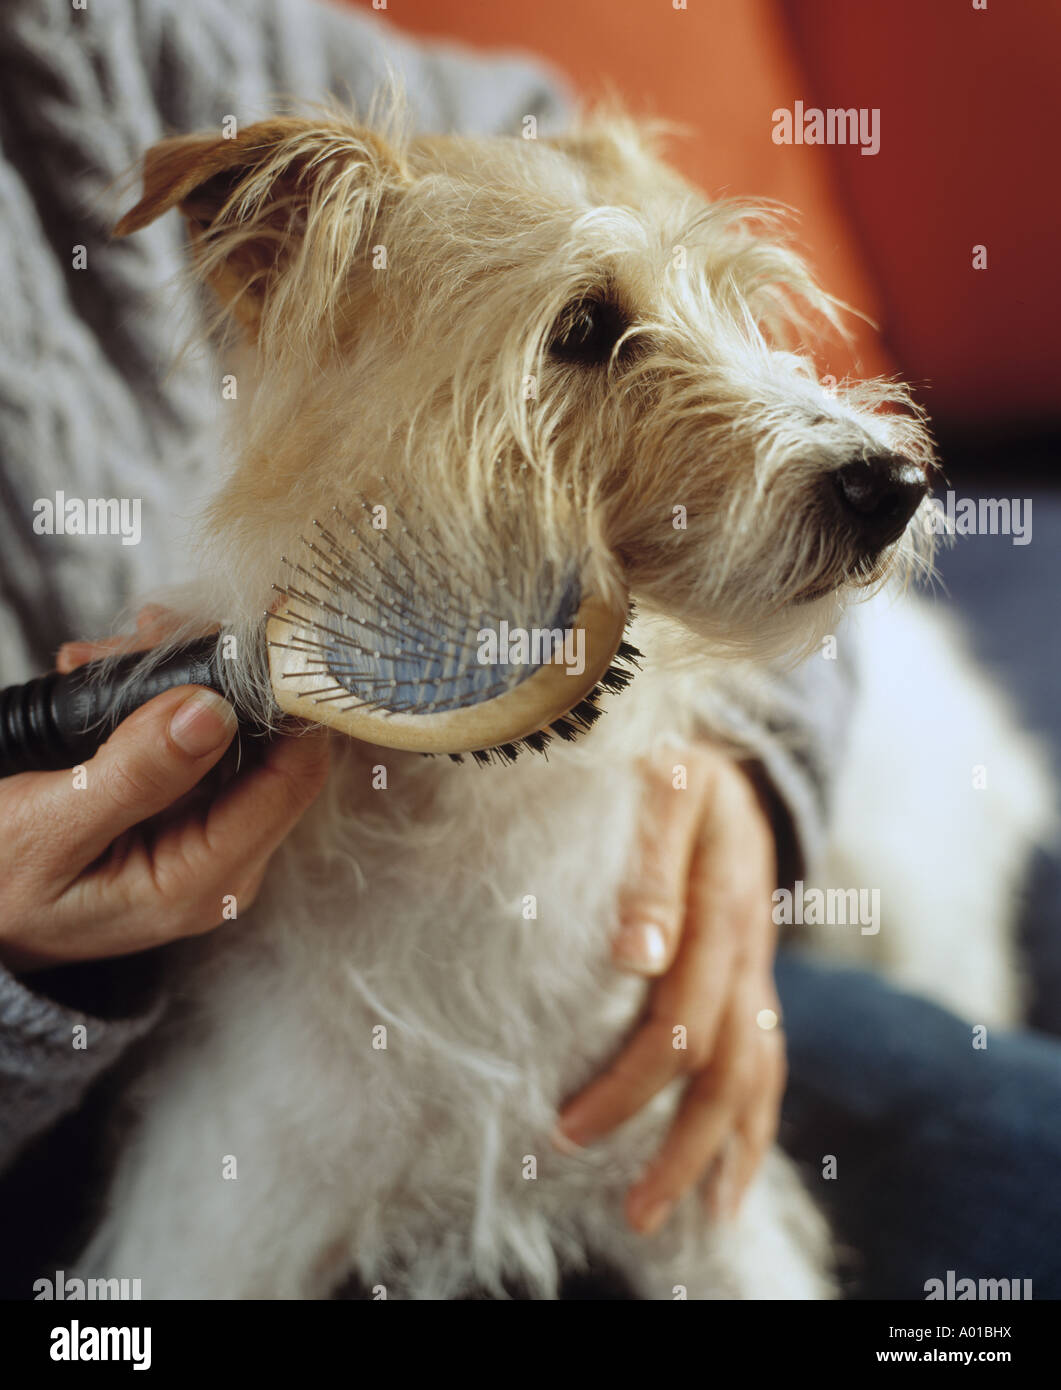 An owner grooming a wire haired terrier - Stock Image